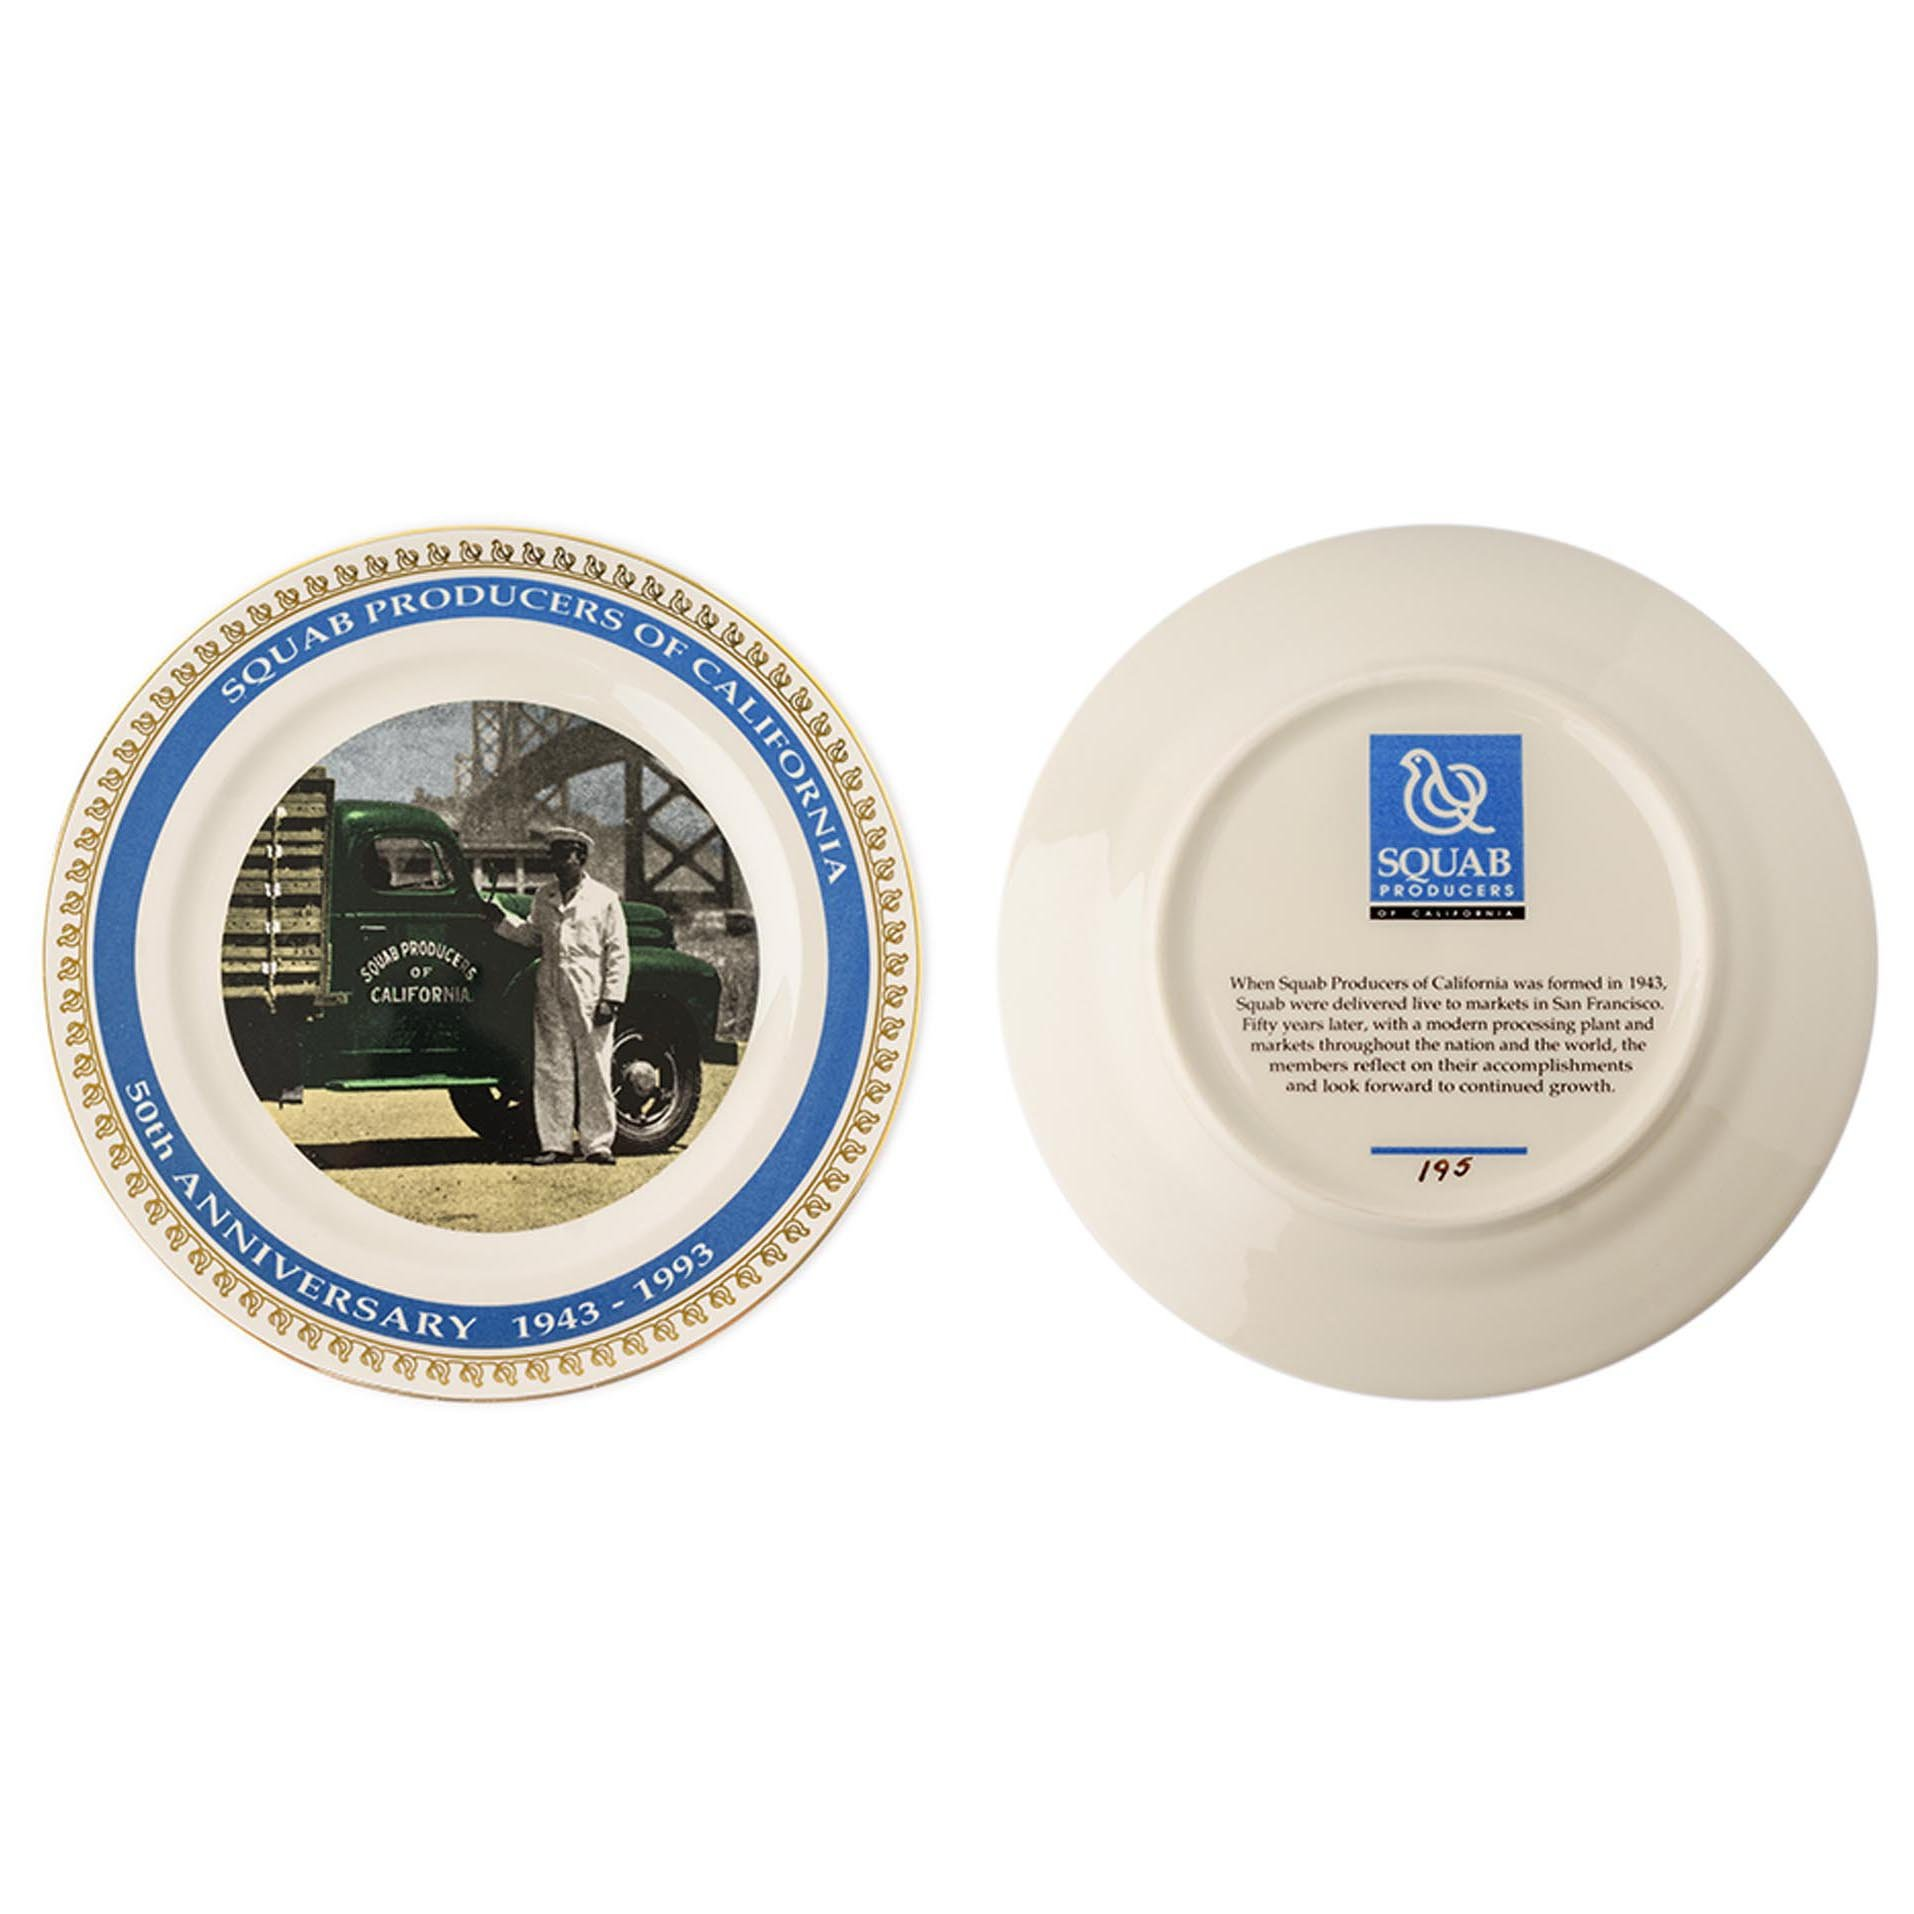 1993. Commemorative plates celebrating 50th anniversary of SPOC.